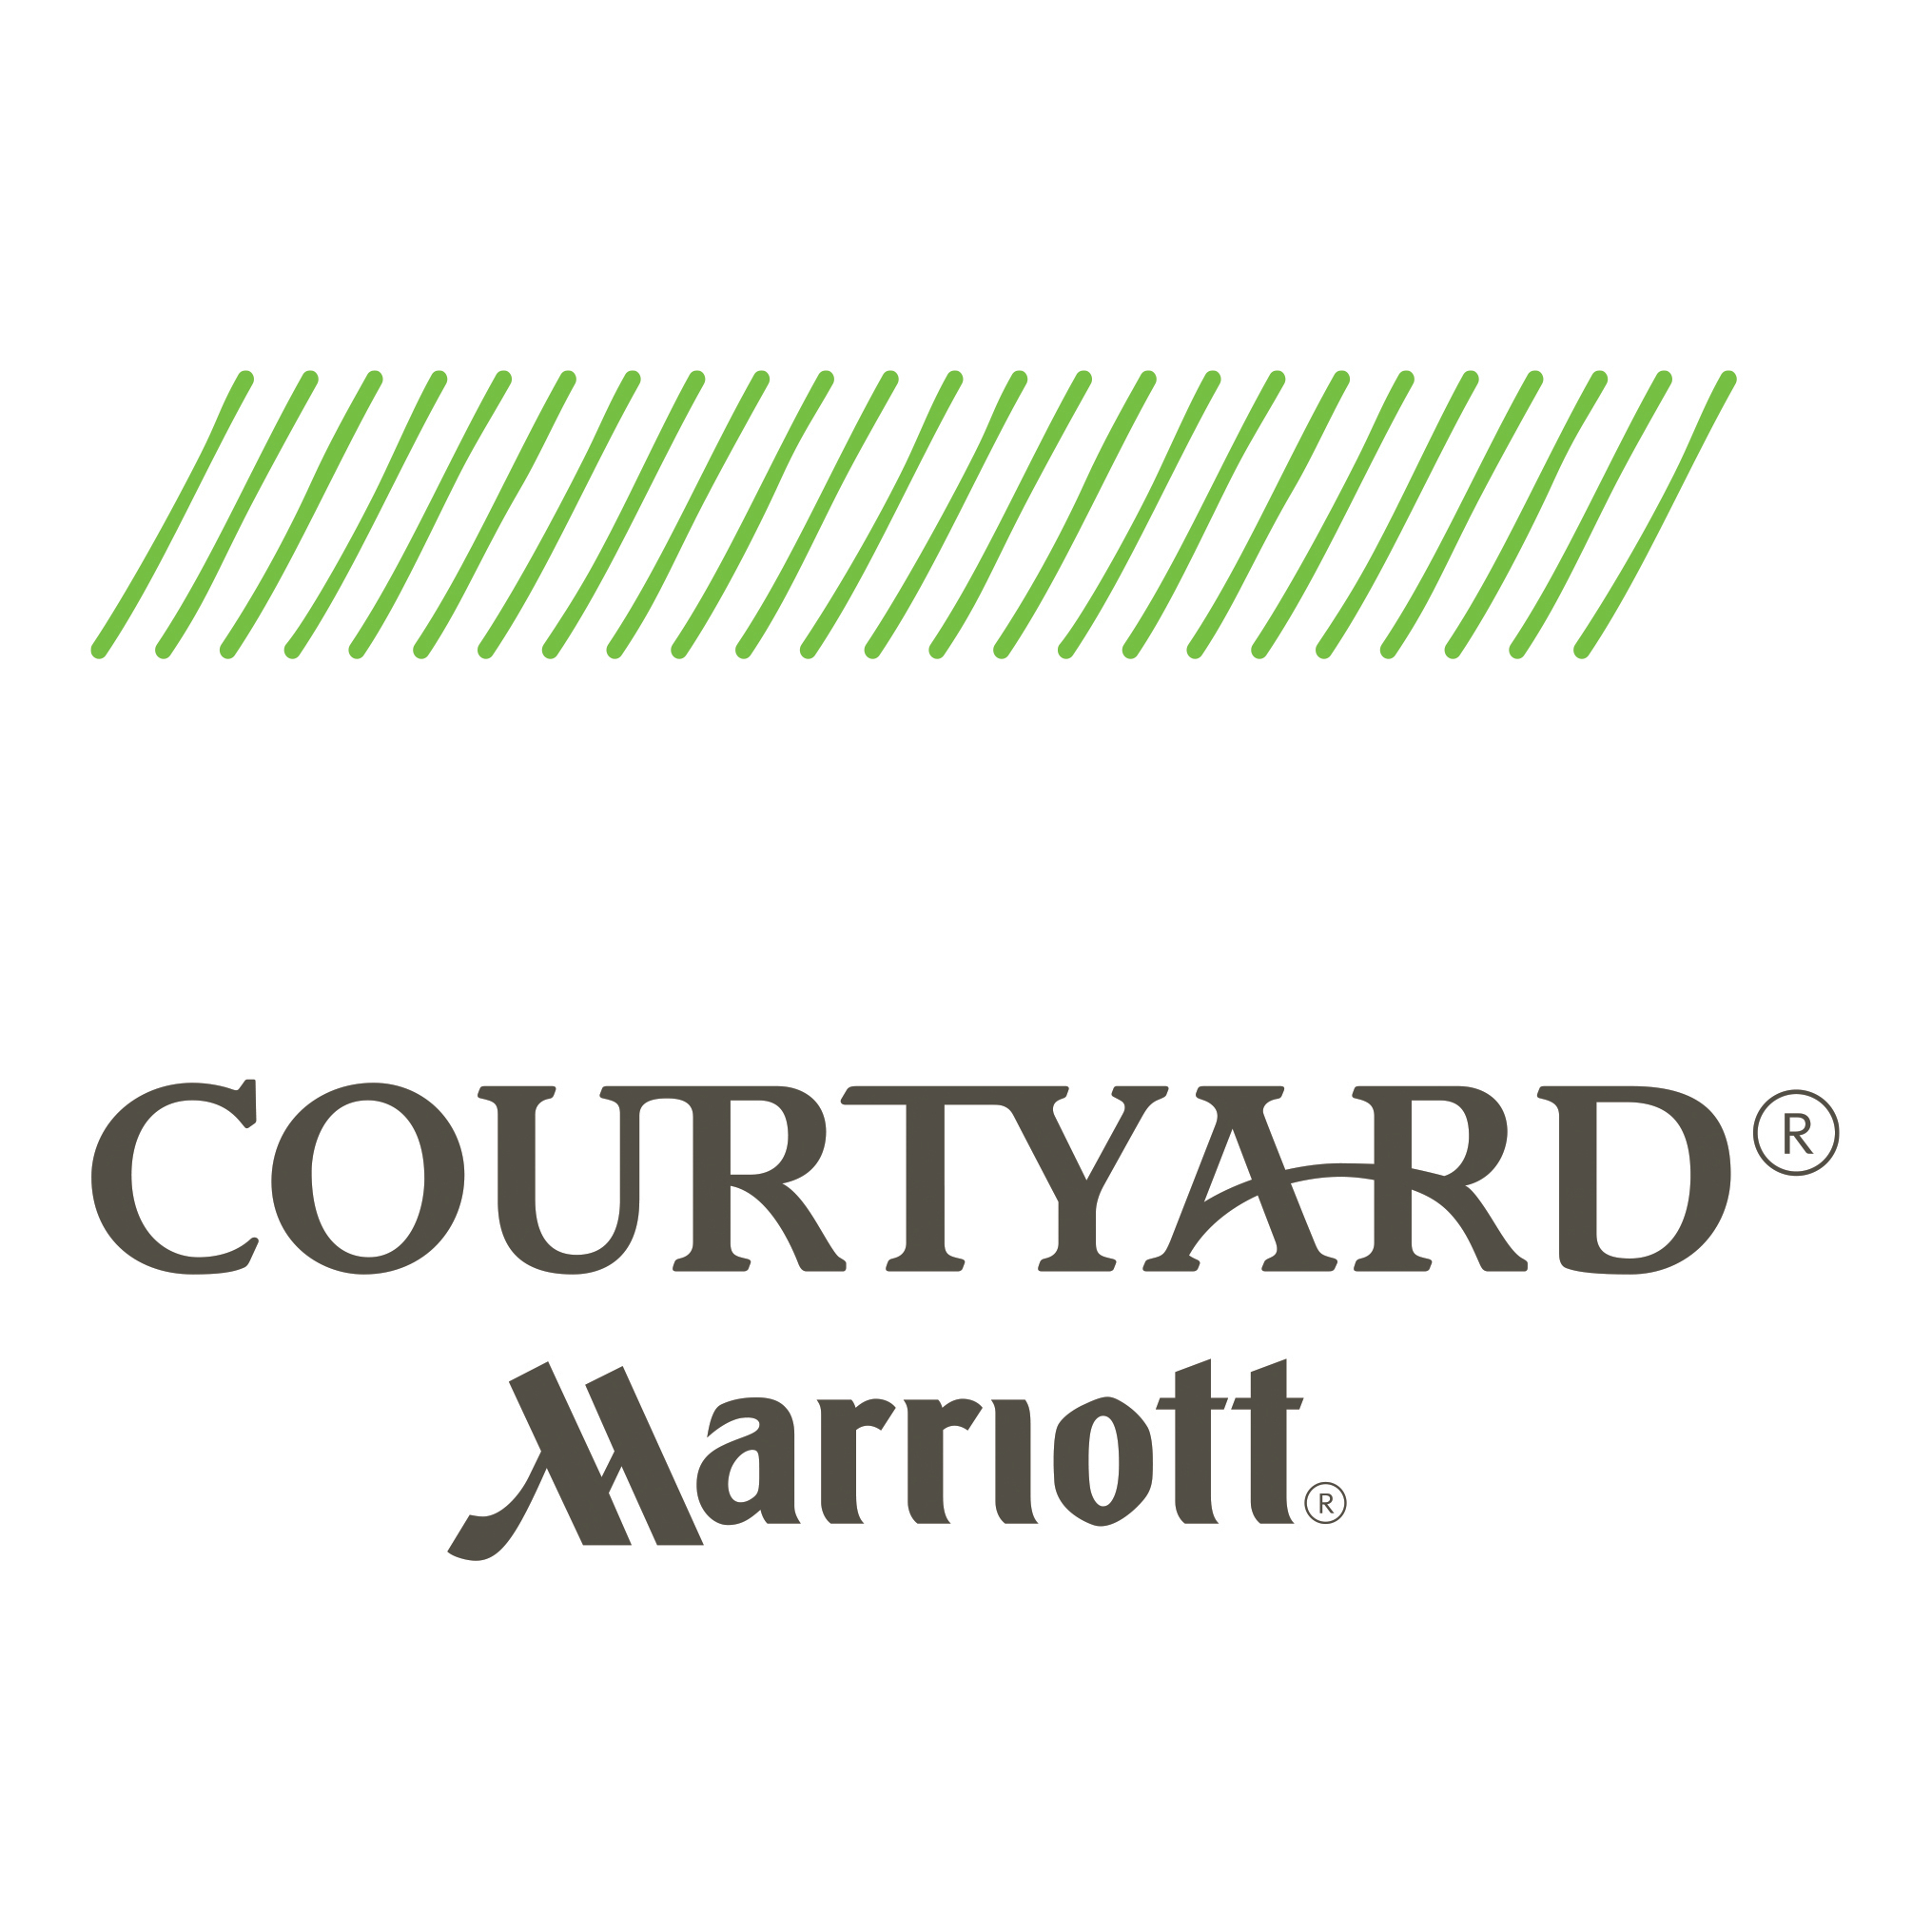 Courtyard by Marriott Houston I-10 West/Park Row